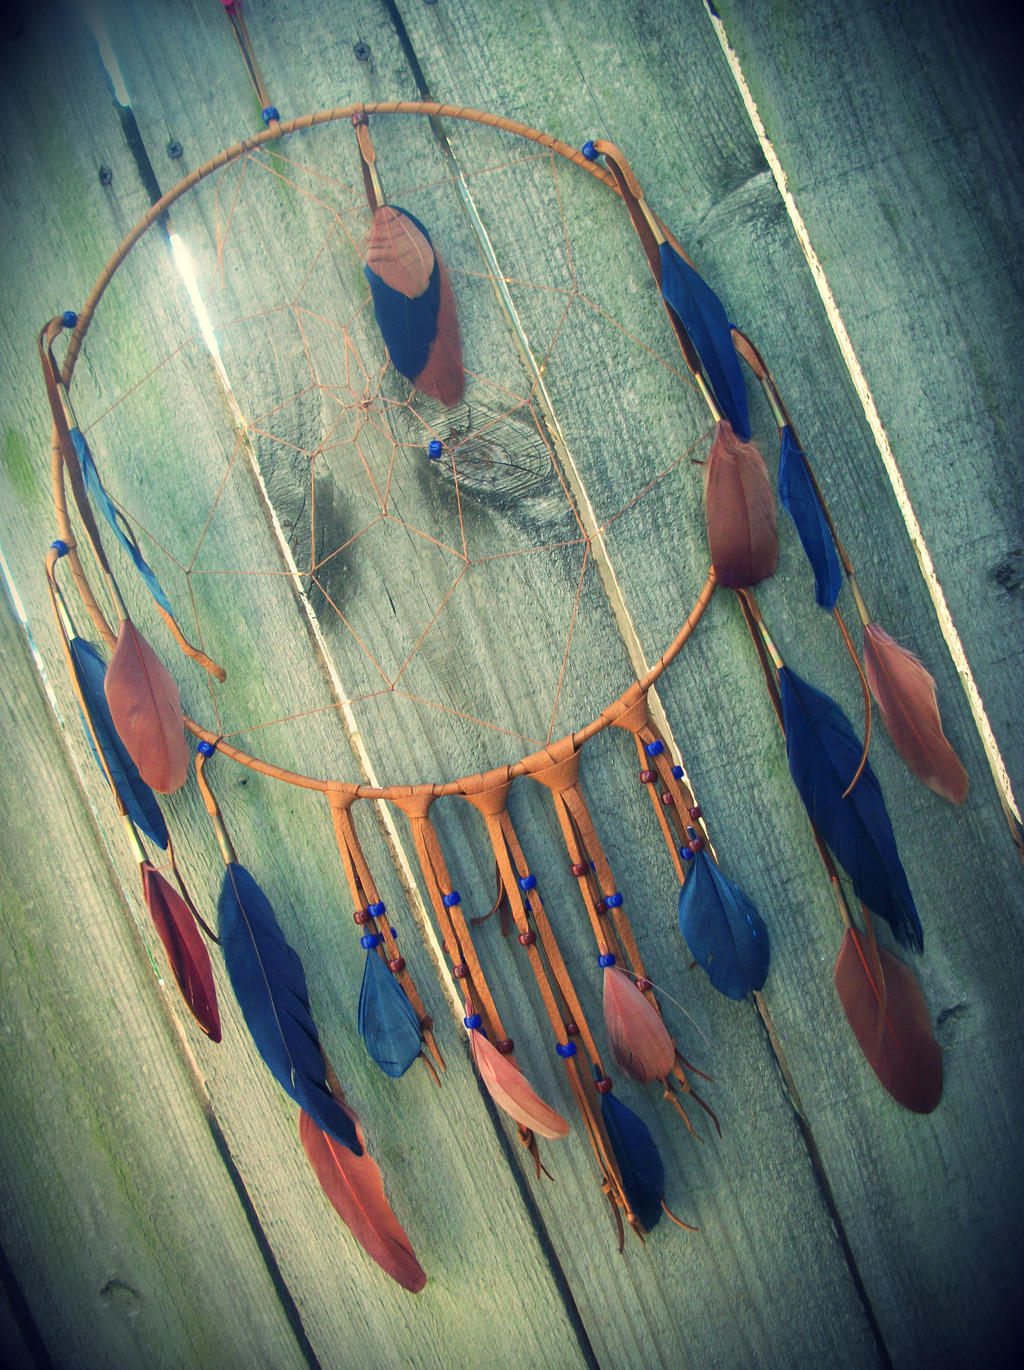 Large Dream Catcher For Sale Large Dream Catcher Navy Blue and Brown by xsaraphanelia on DeviantArt 39